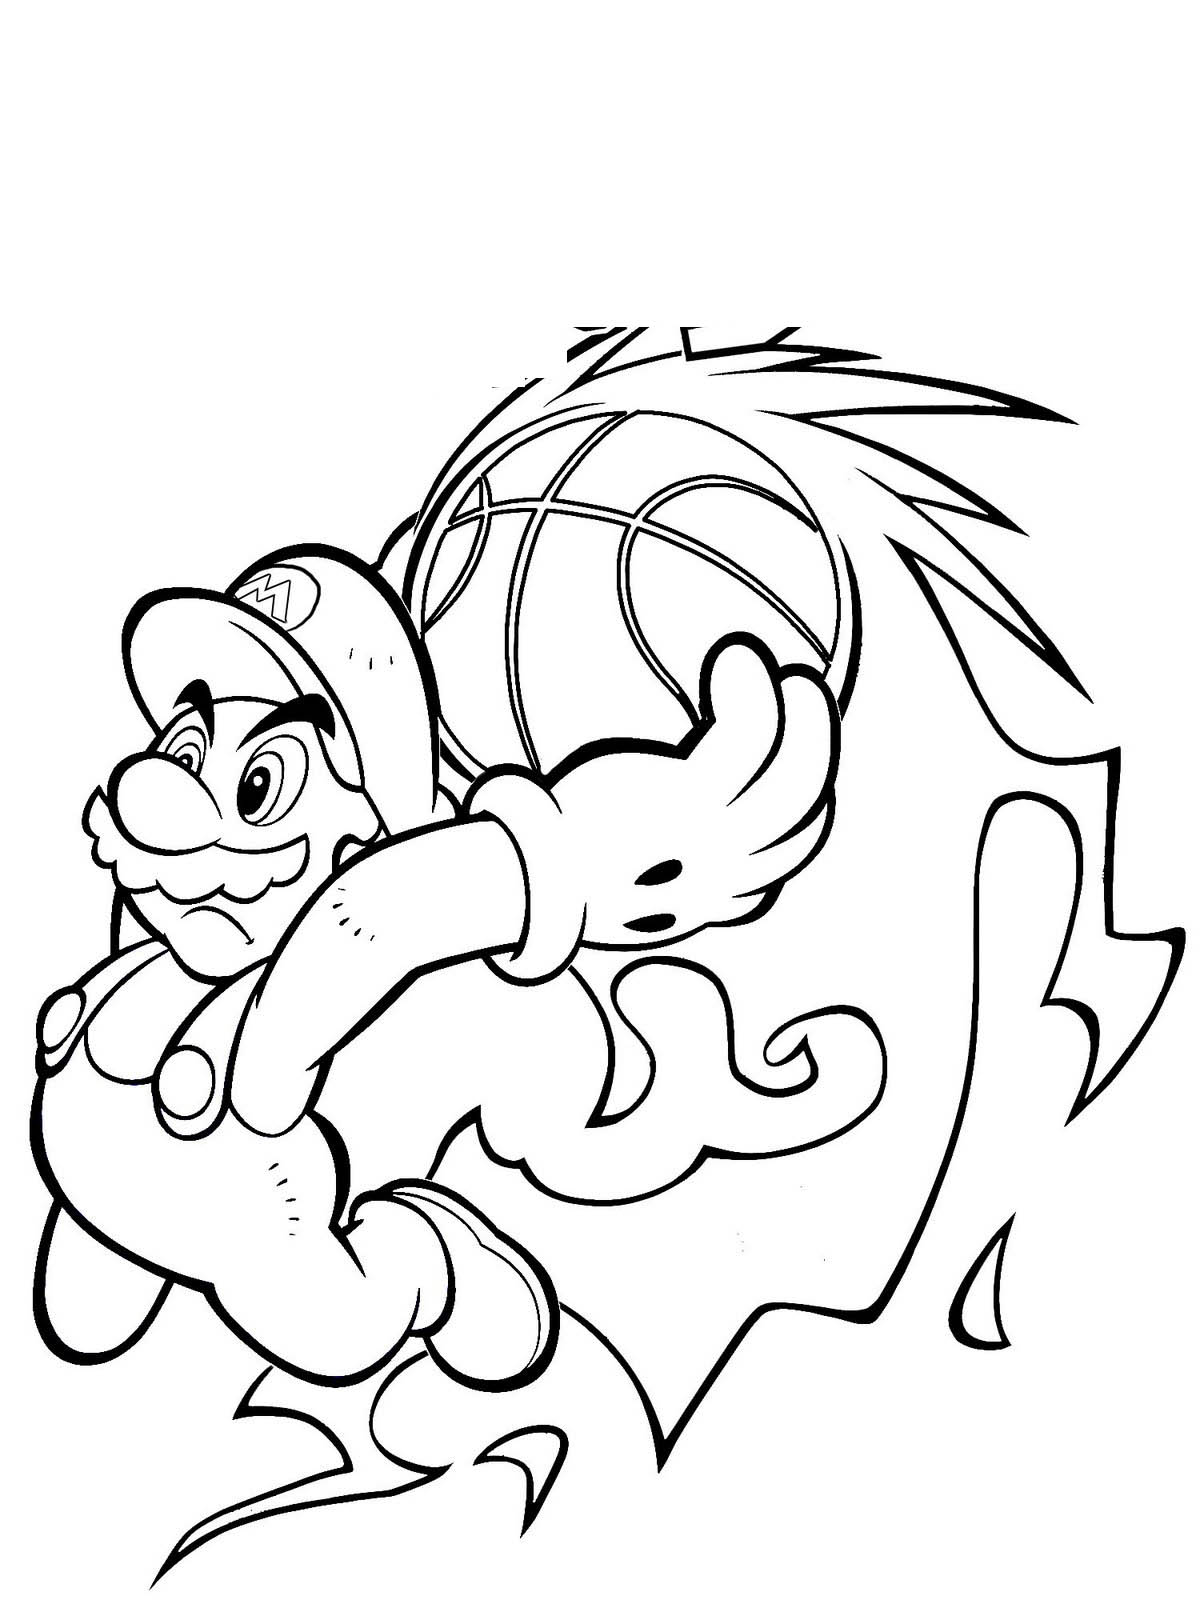 Super Mario Coloring Pages ~ Free Printable Coloring Pages - Cool ...